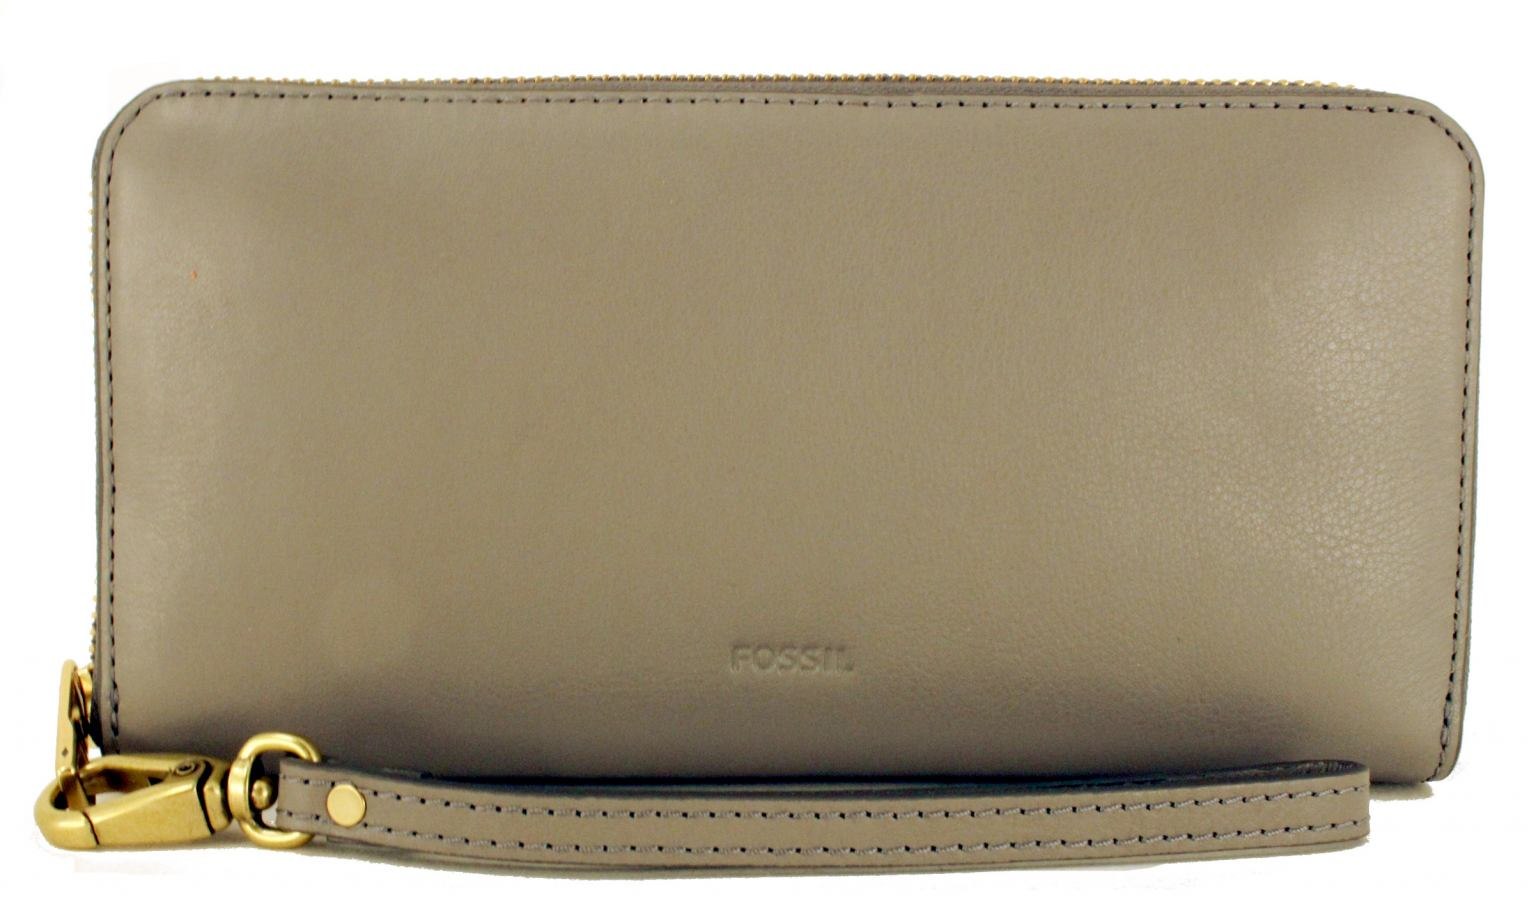 ac2f48a359583 Fossil Emma Large RFID Protection Portemonnaie Grau - Bags   more